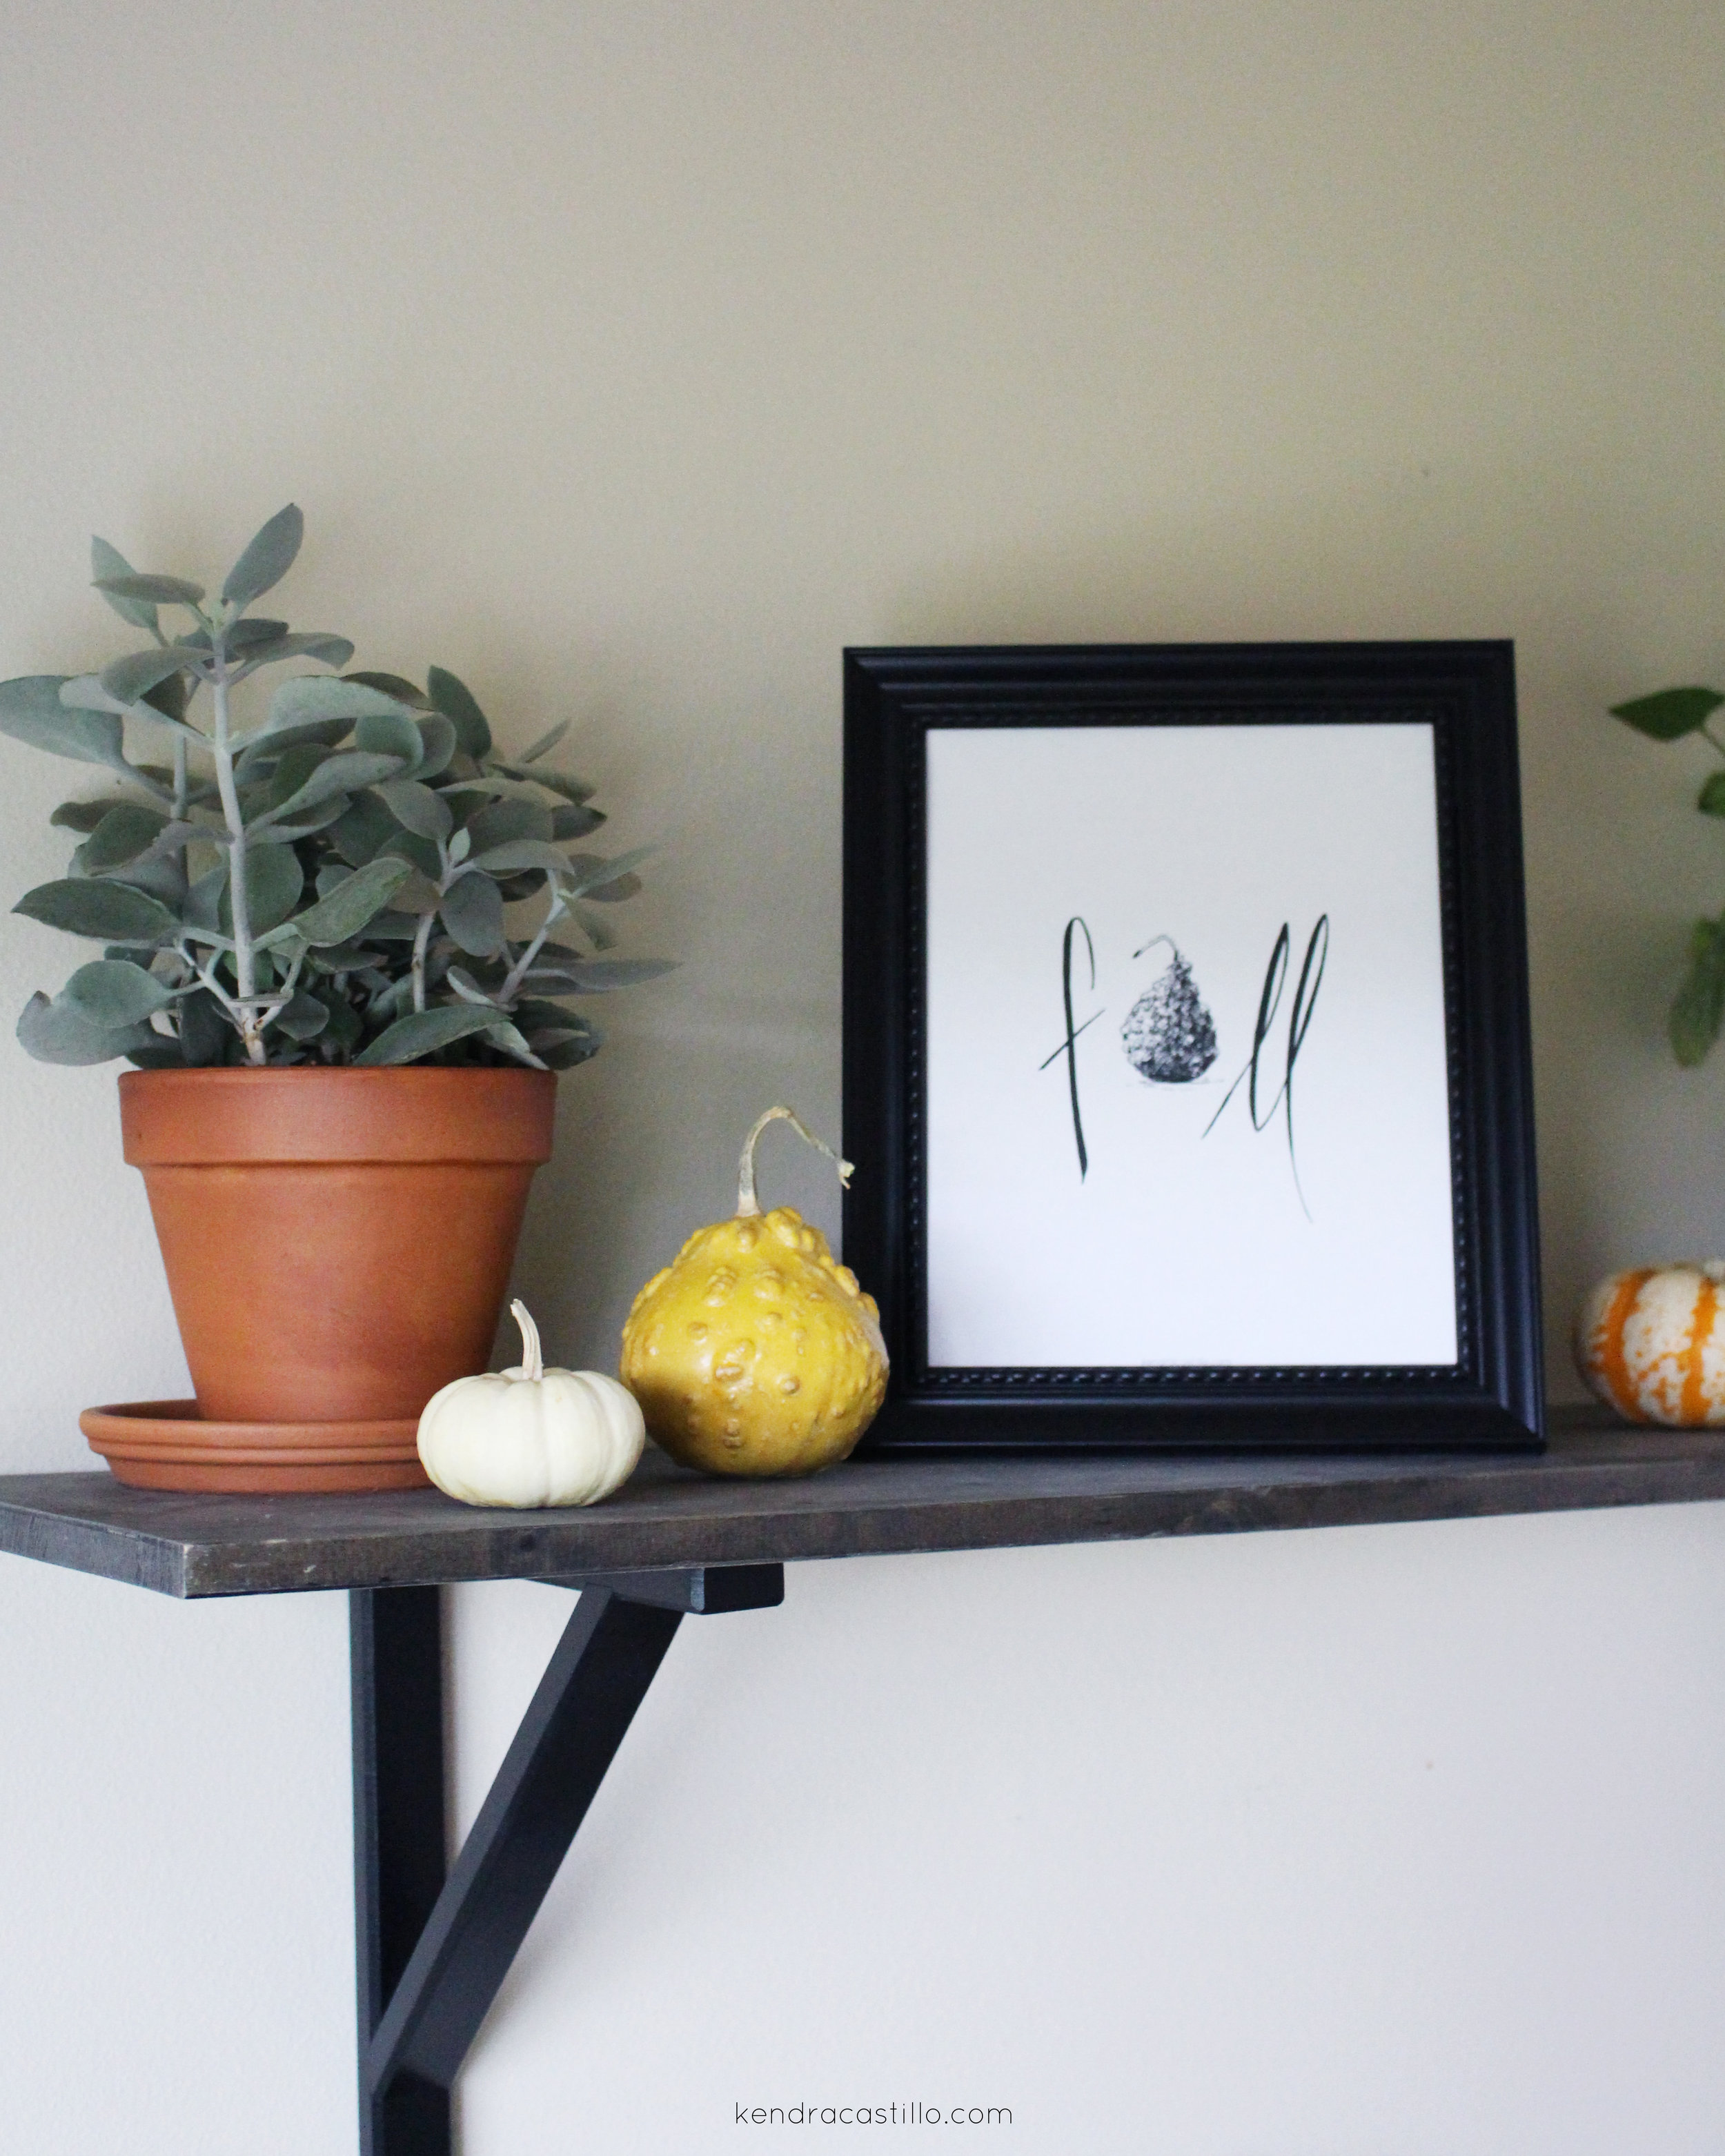 Kendra Castillo: Simple Styling for Fall + a Free Fall Printable